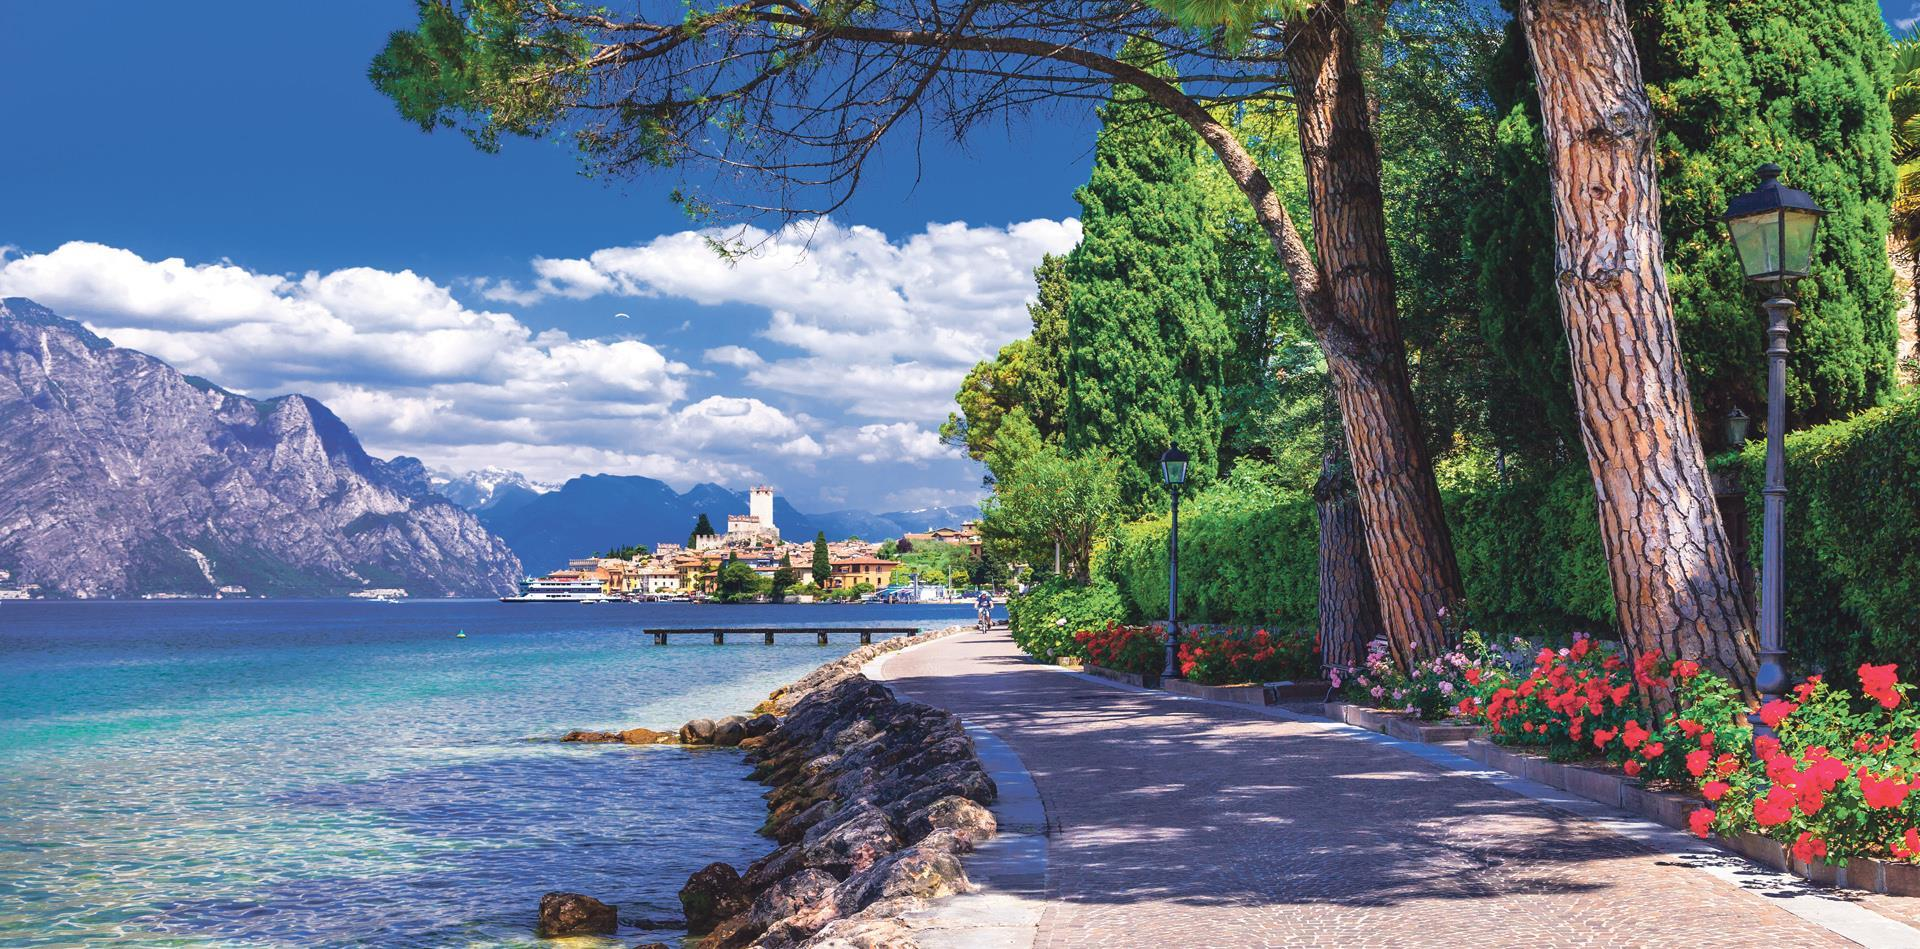 Lake Garda and the Adriatic All Inclusive Cruise